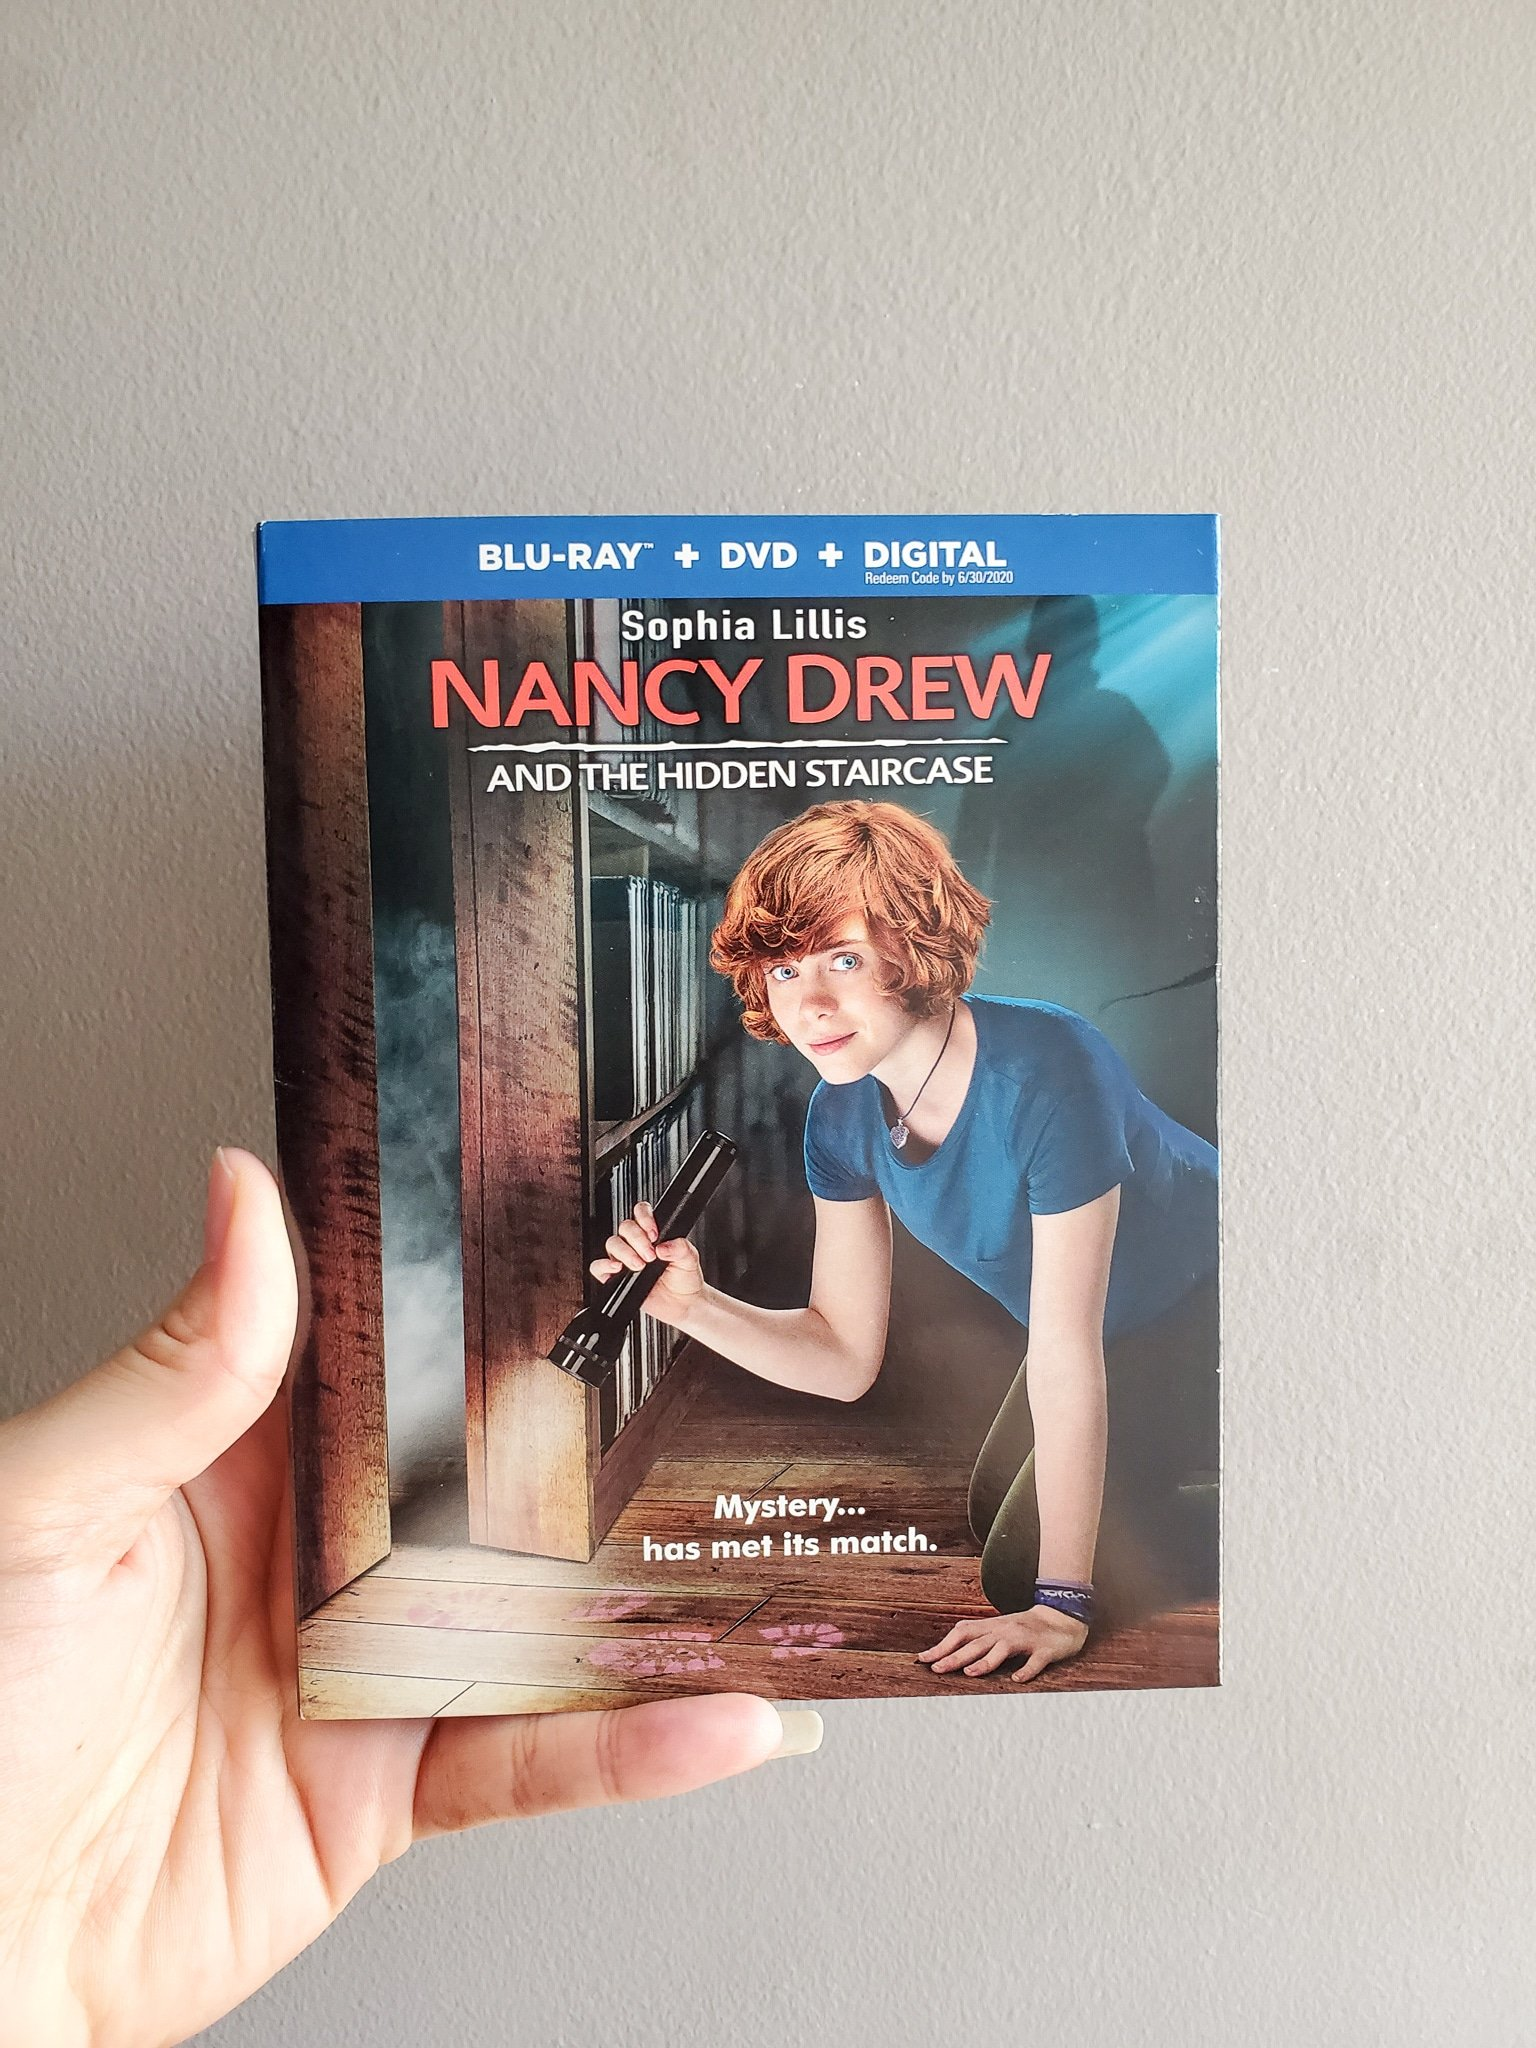 Nancy Drew And The Hidden Staircase DVD. Nancy Drew And The Hidden Staircase film is heading home on Digital March 26, 2019 and on Blu-ray™ Combo Pack & DVD on April 2, 2019! If you haven't heard about the newest film in the Nancy Drew series then look no further. Check out all of the info below on what to expect with this family-friendly film.